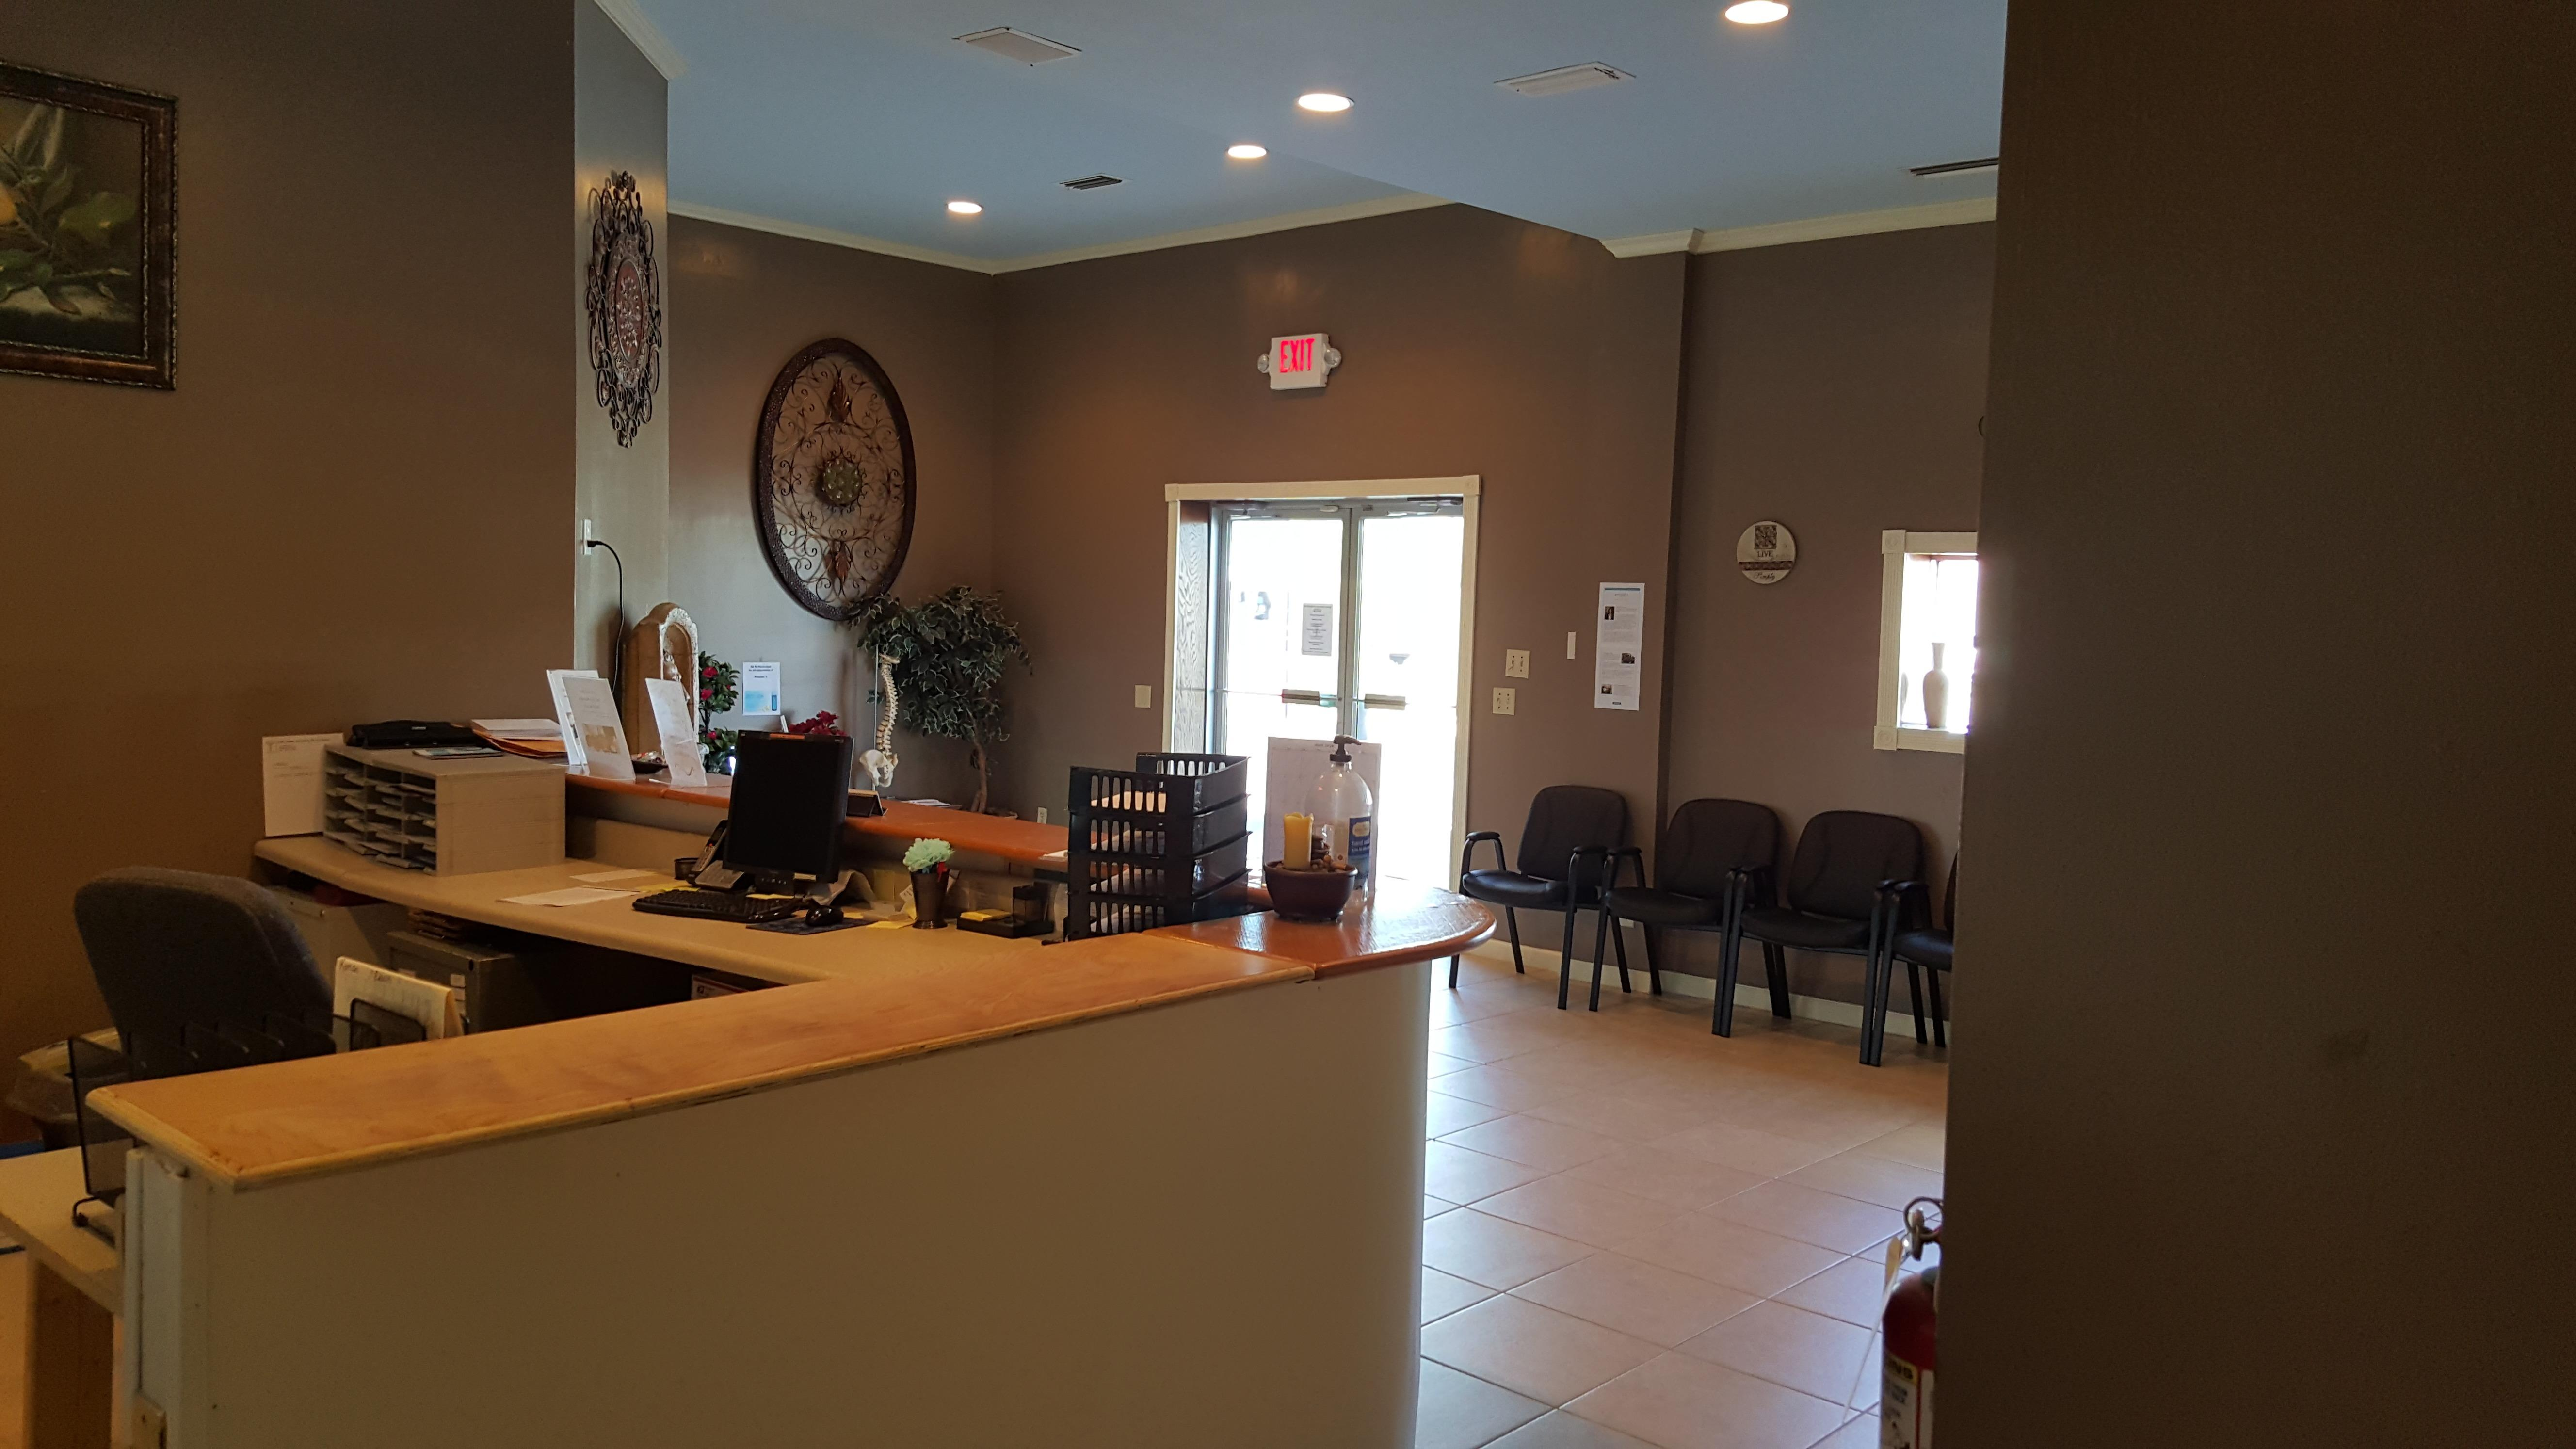 North Florida Chiropractic Physical Therapy image 3